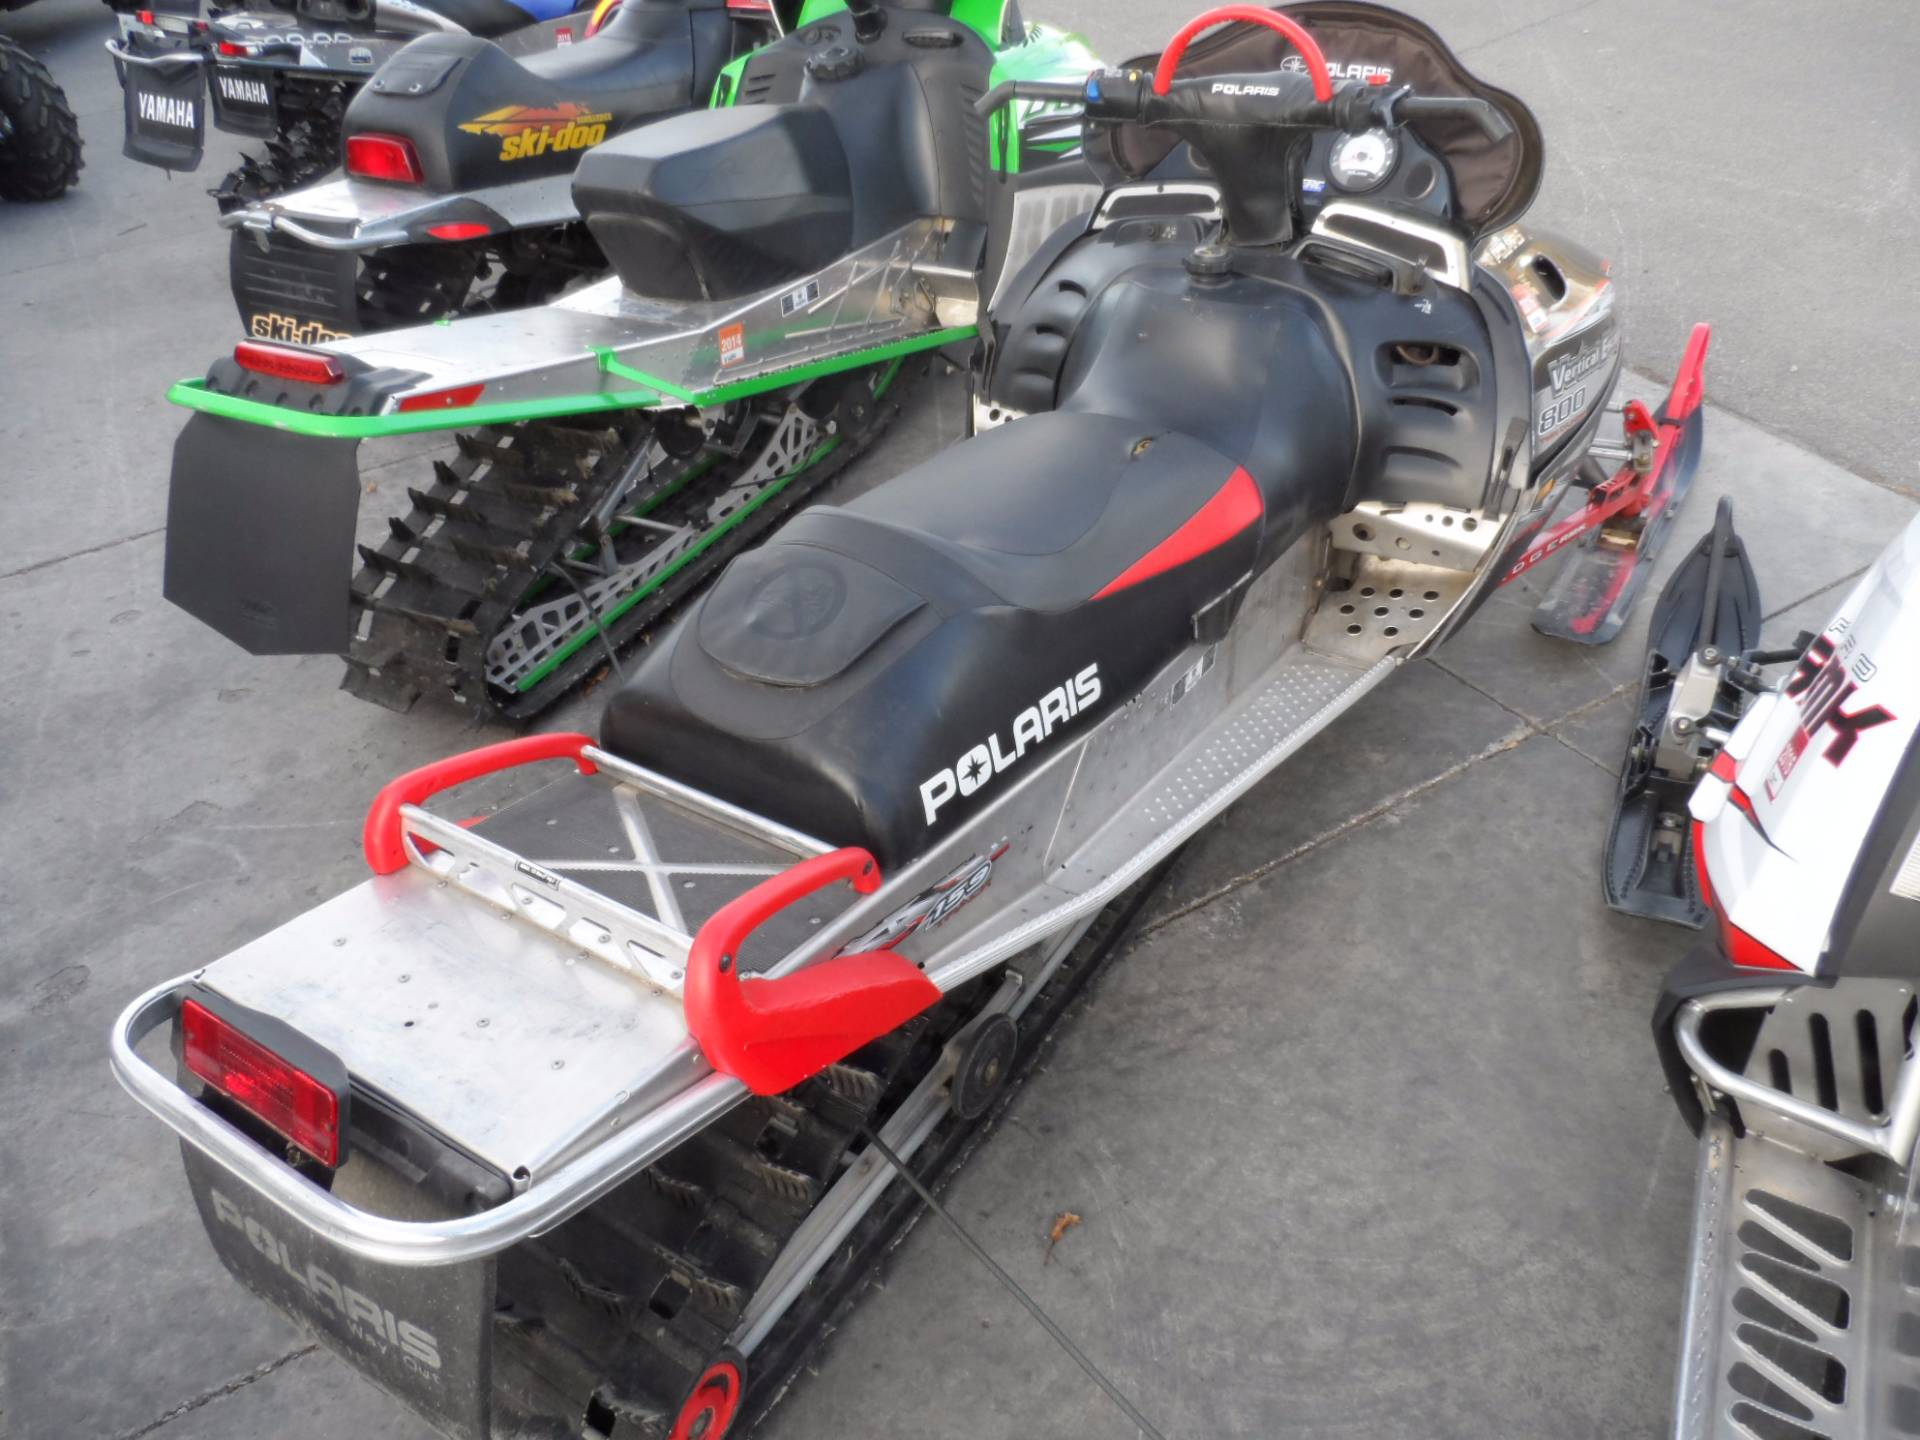 2003 Polaris 800 RMK in Gunnison, Colorado